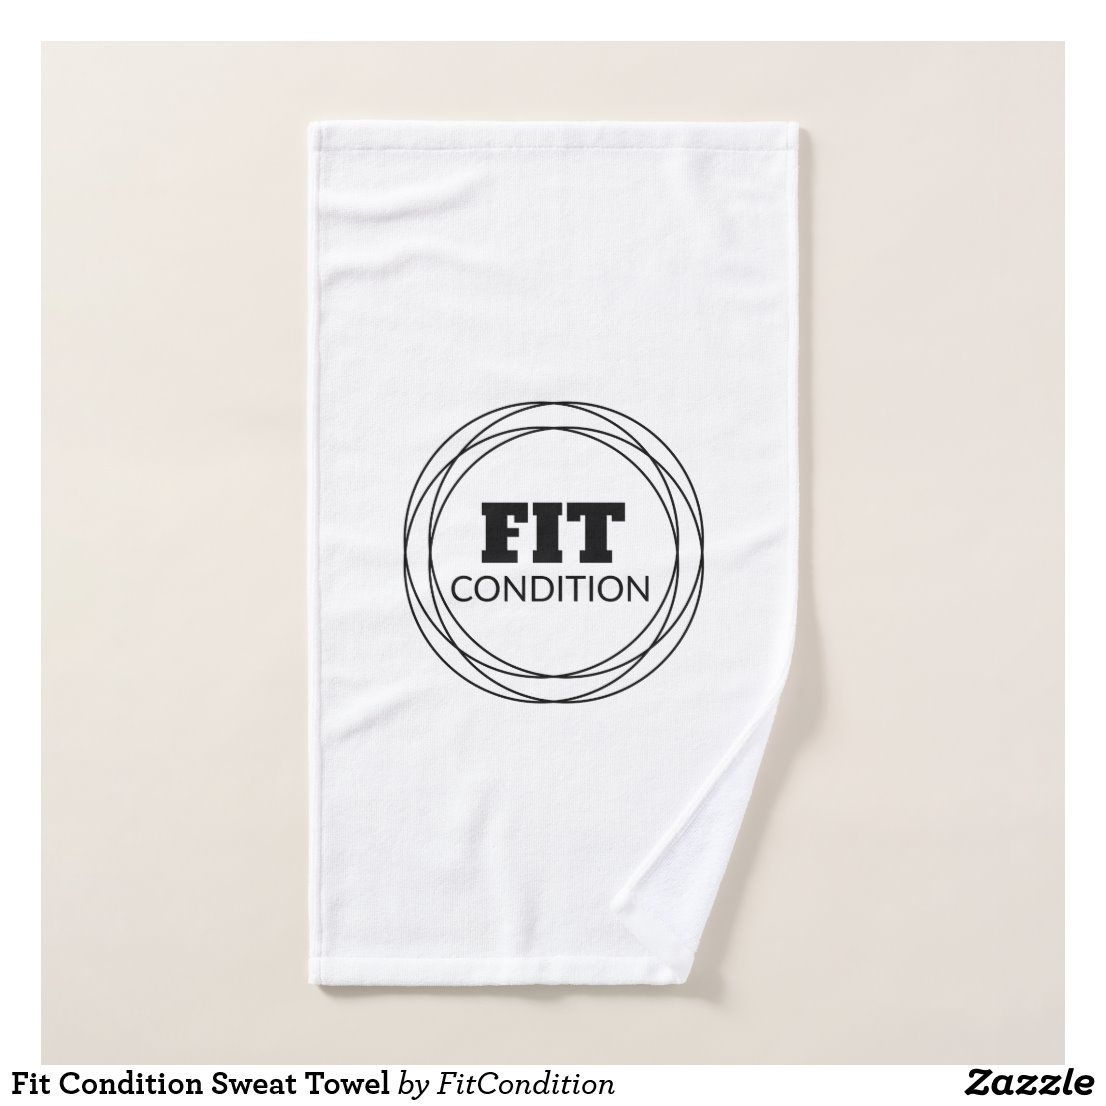 Fit Condition Sweat Towel | Gym Towel diy #fitcondition #sweattowel #gym #fitness